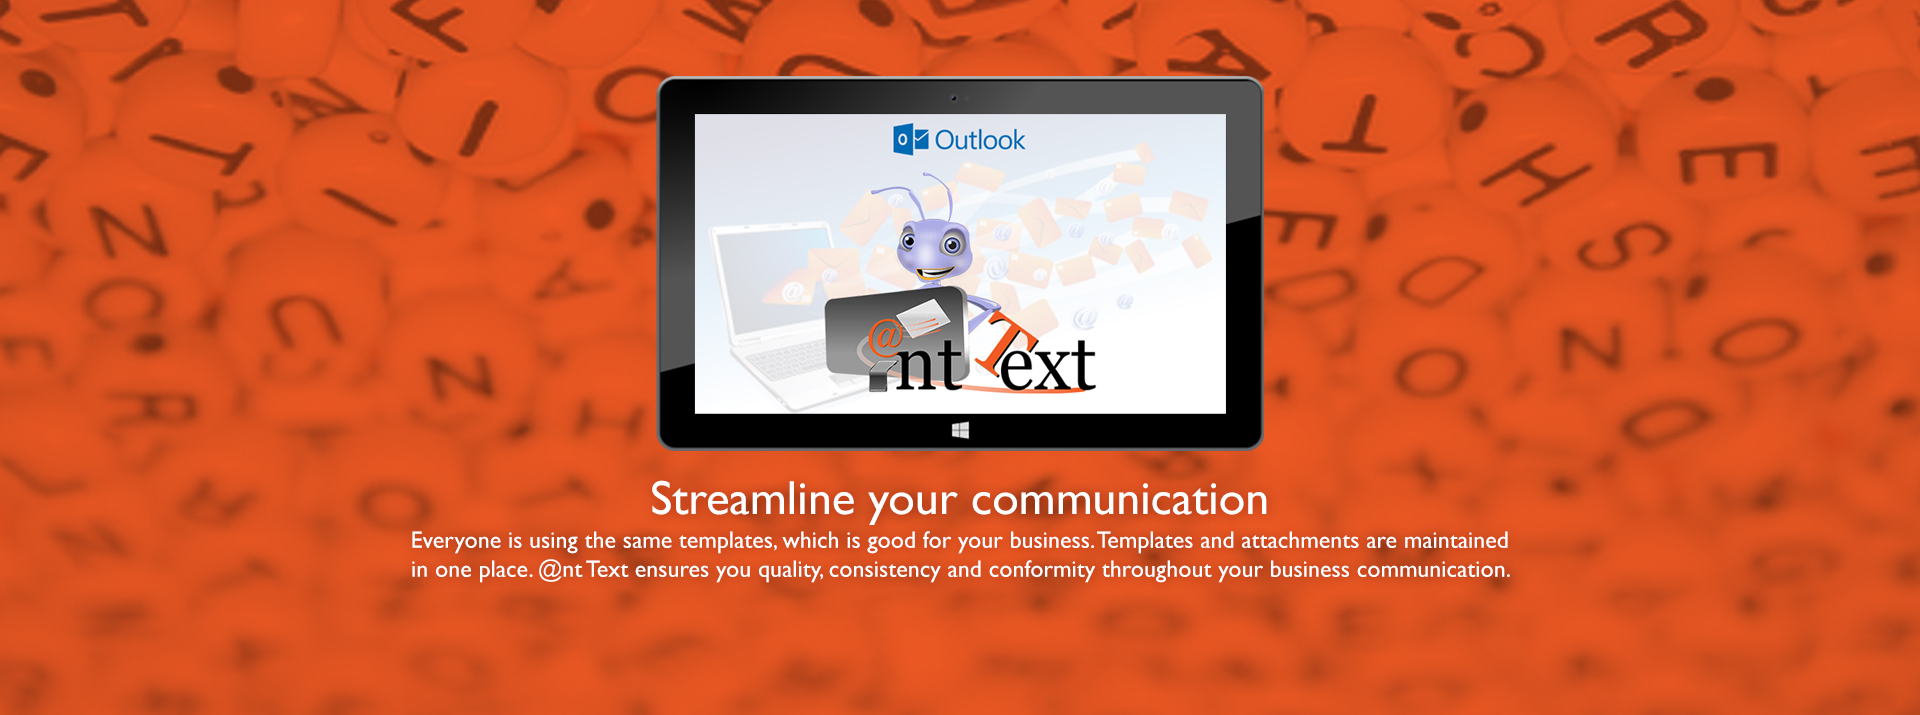 Header Computer screen with Outlook and Ant Text logos - Streamline your communication